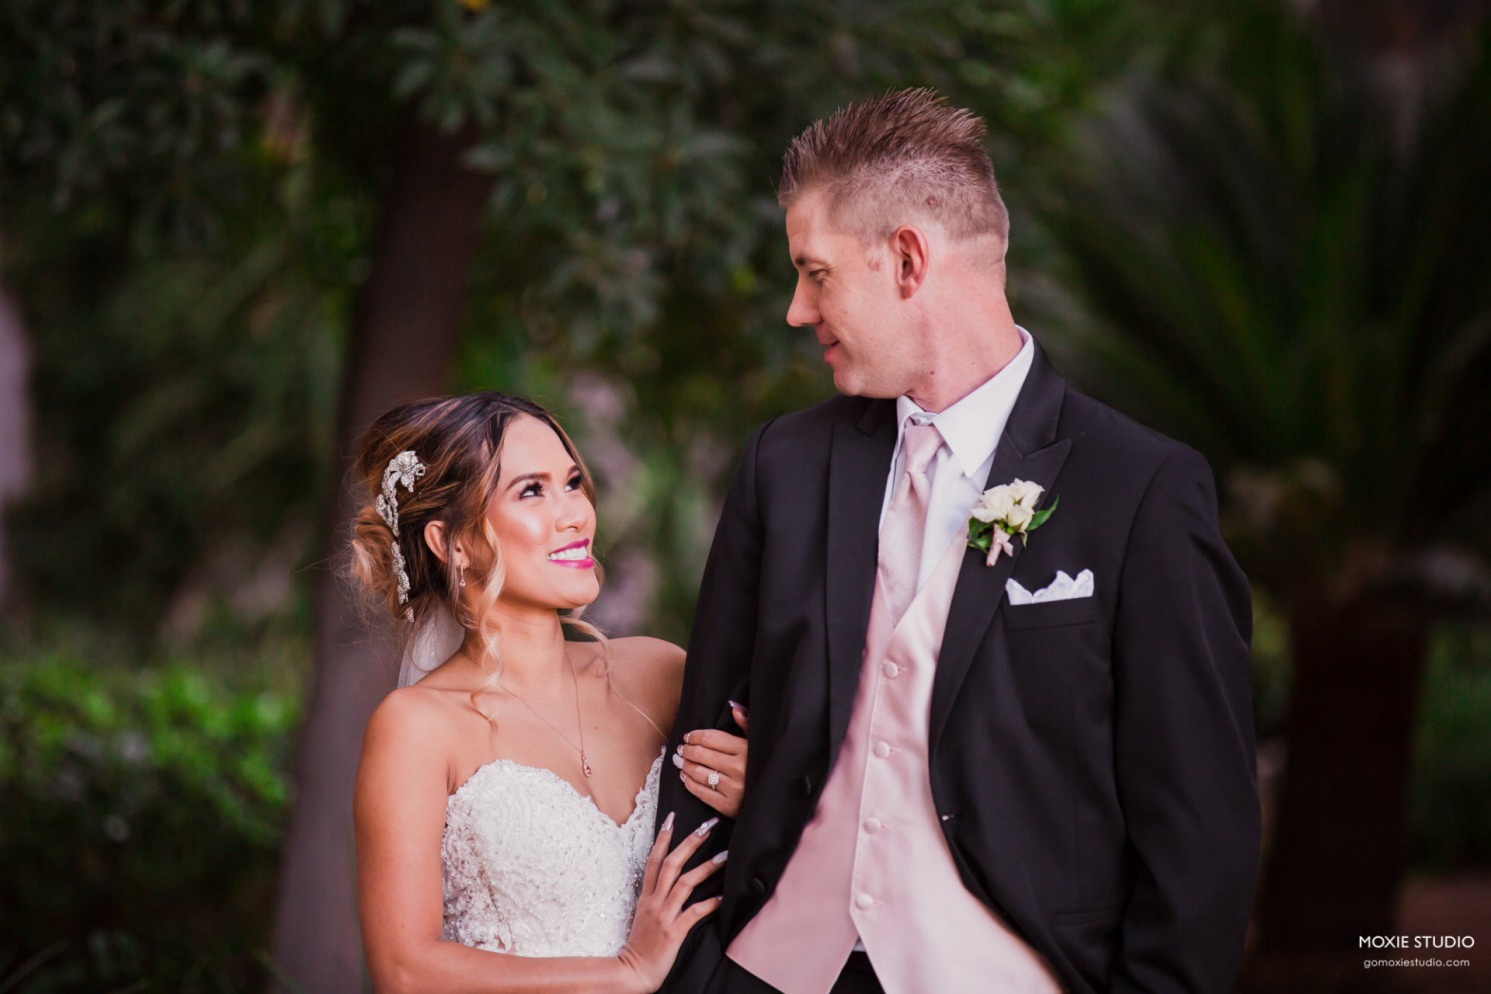 Couple at wedding on private residence.